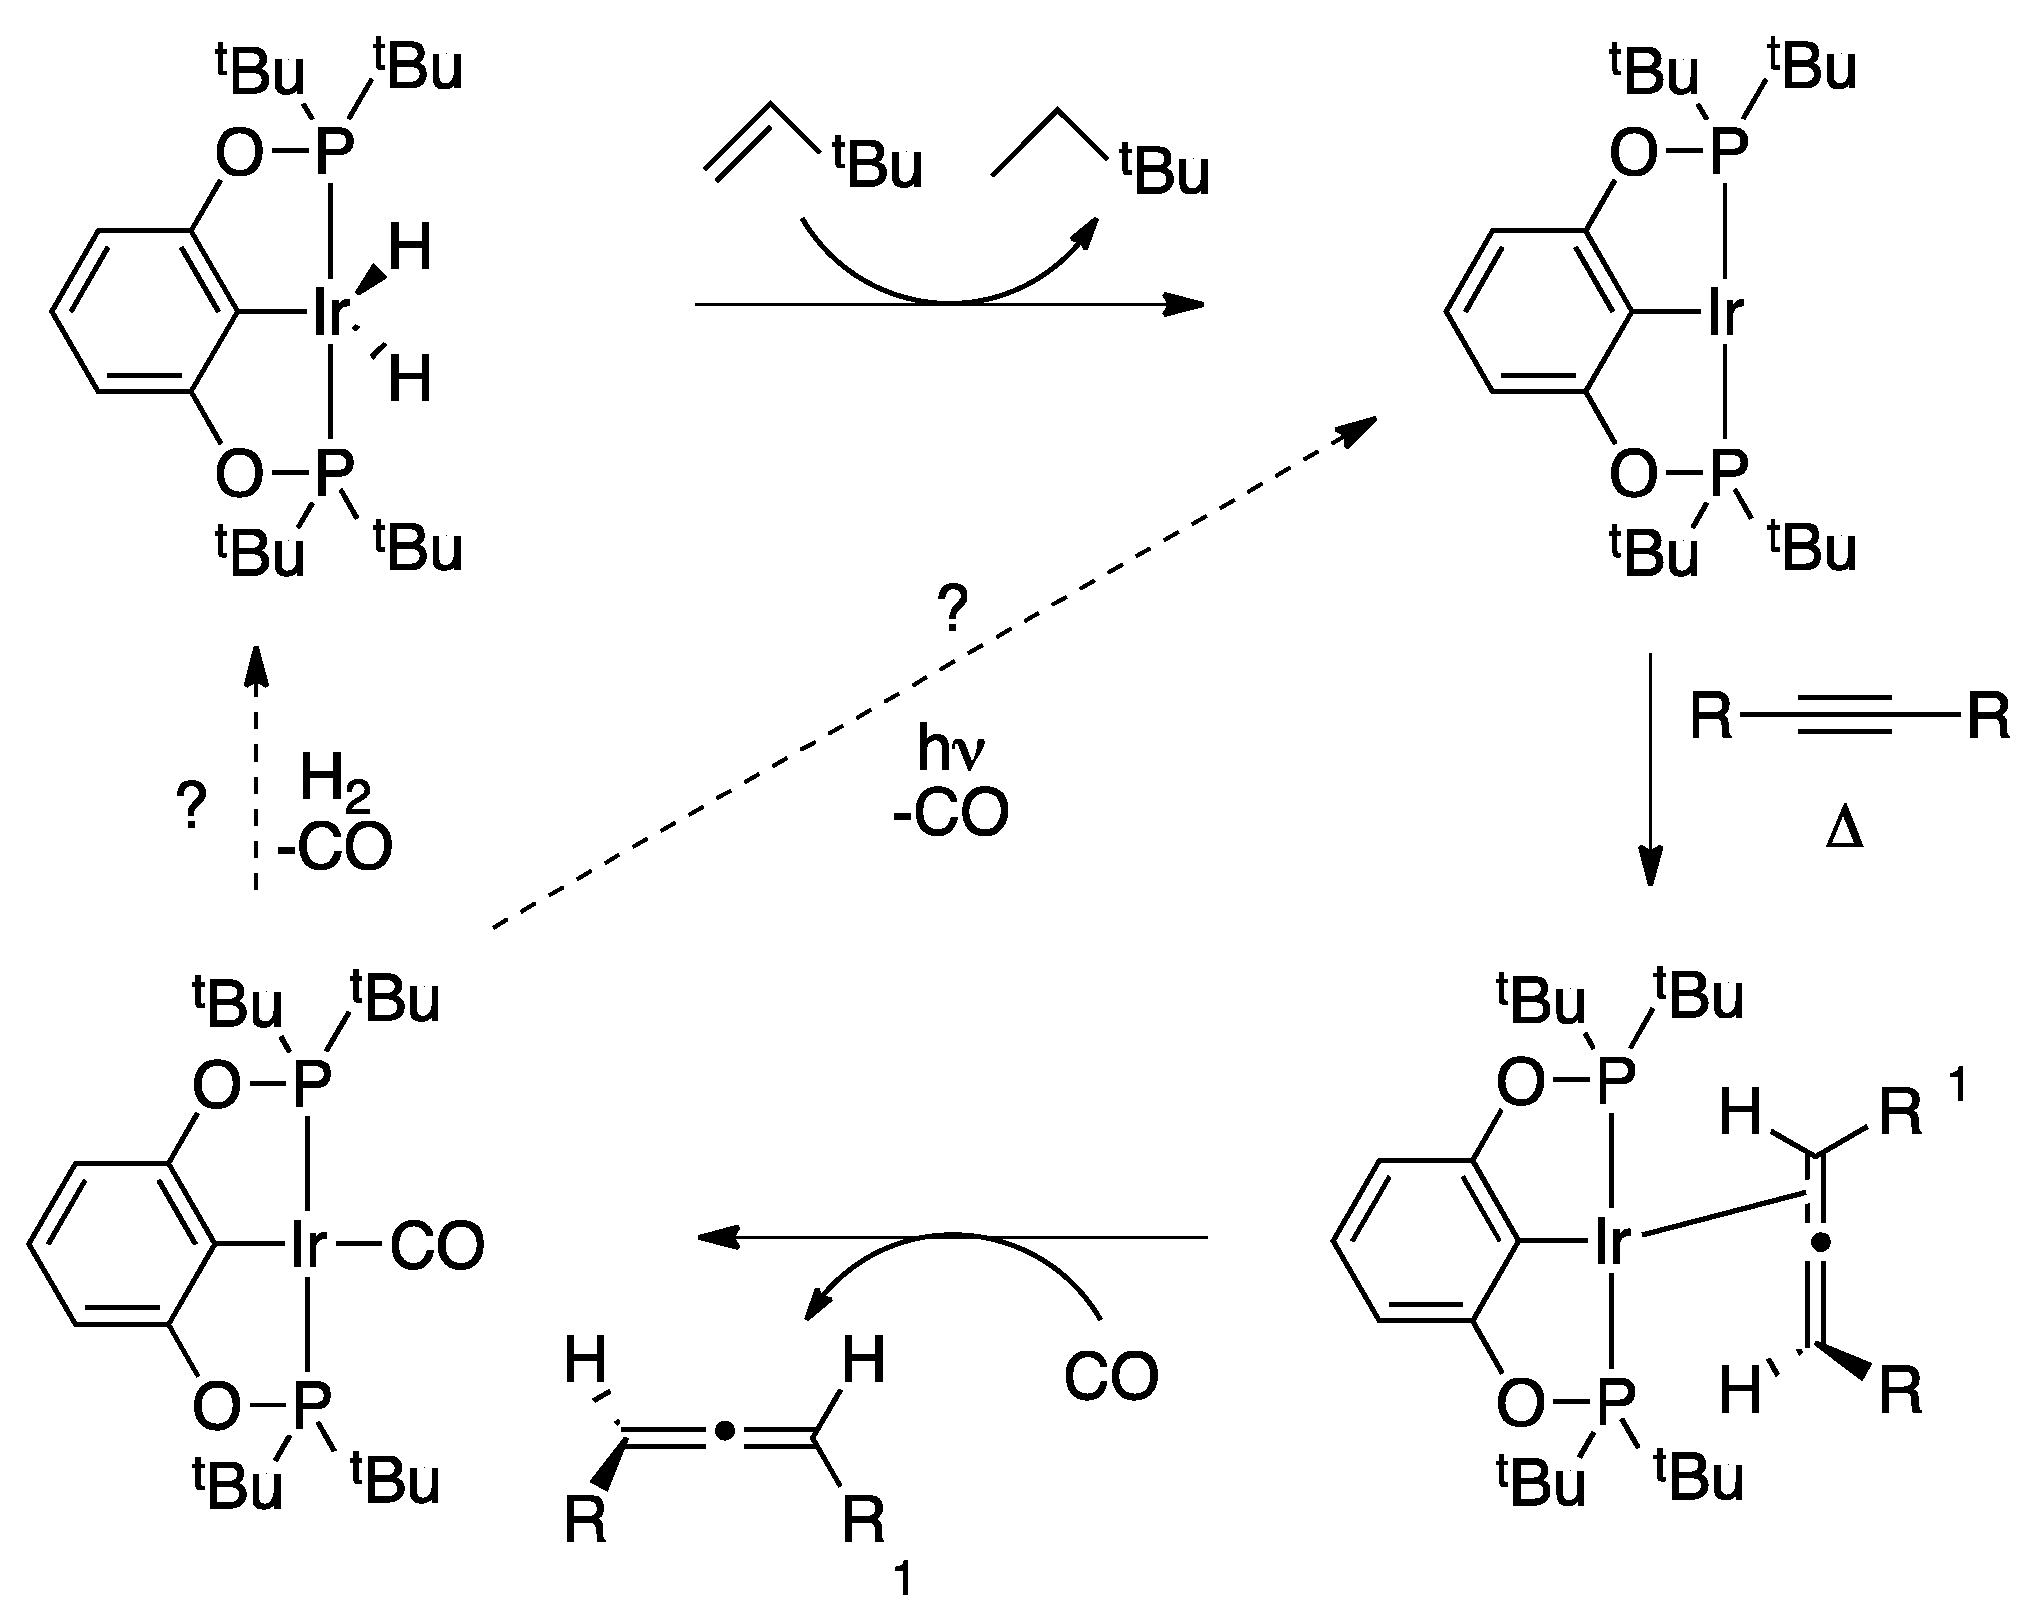 sigma bond metathesis common Common olefin metathesis catalysts 1 covalent sigma bond to more active catalyst makes functionalized cross- metathesis possible.